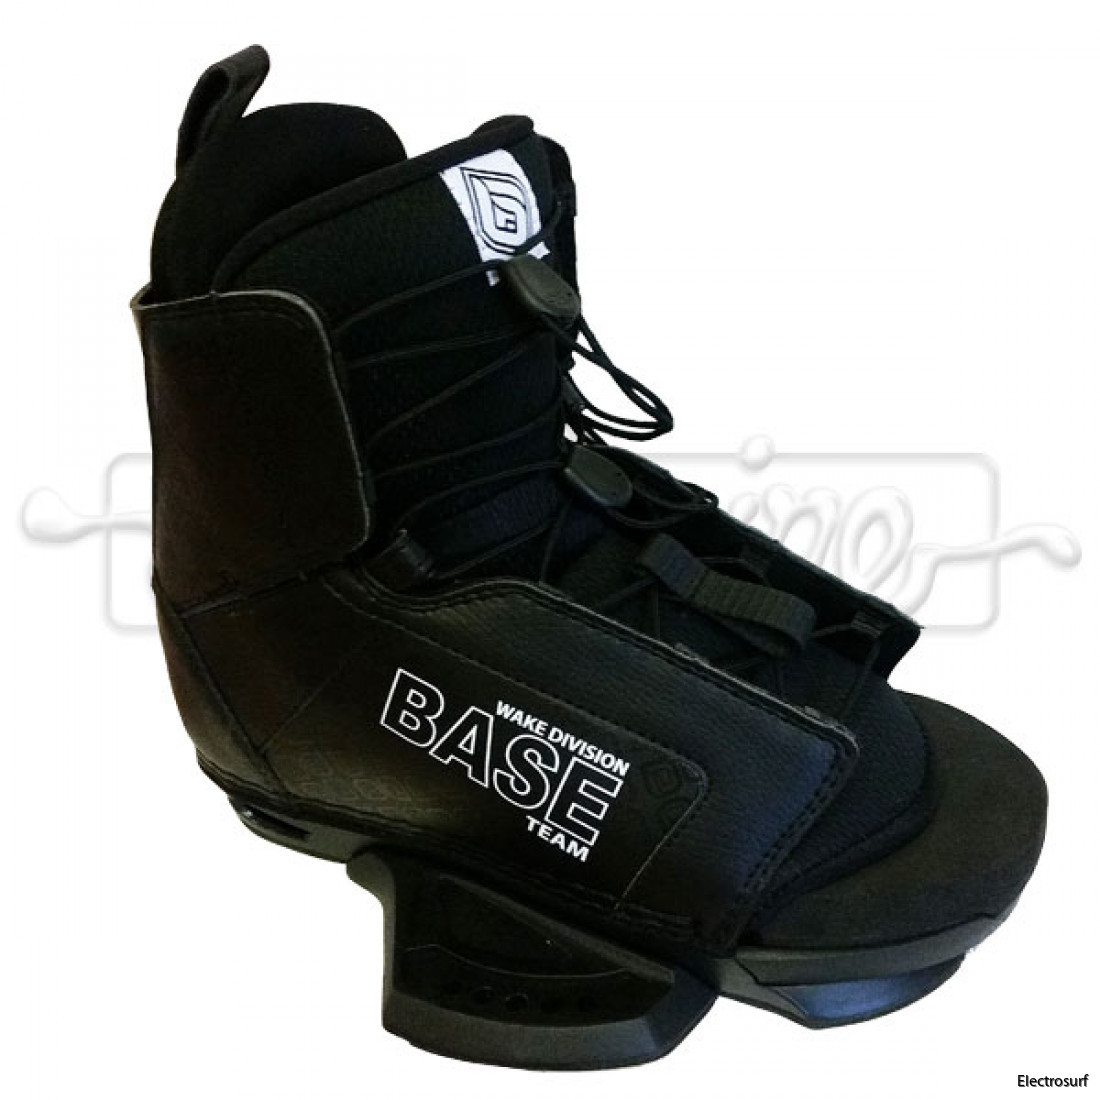 3515-base-team-boot-side-1100x1100